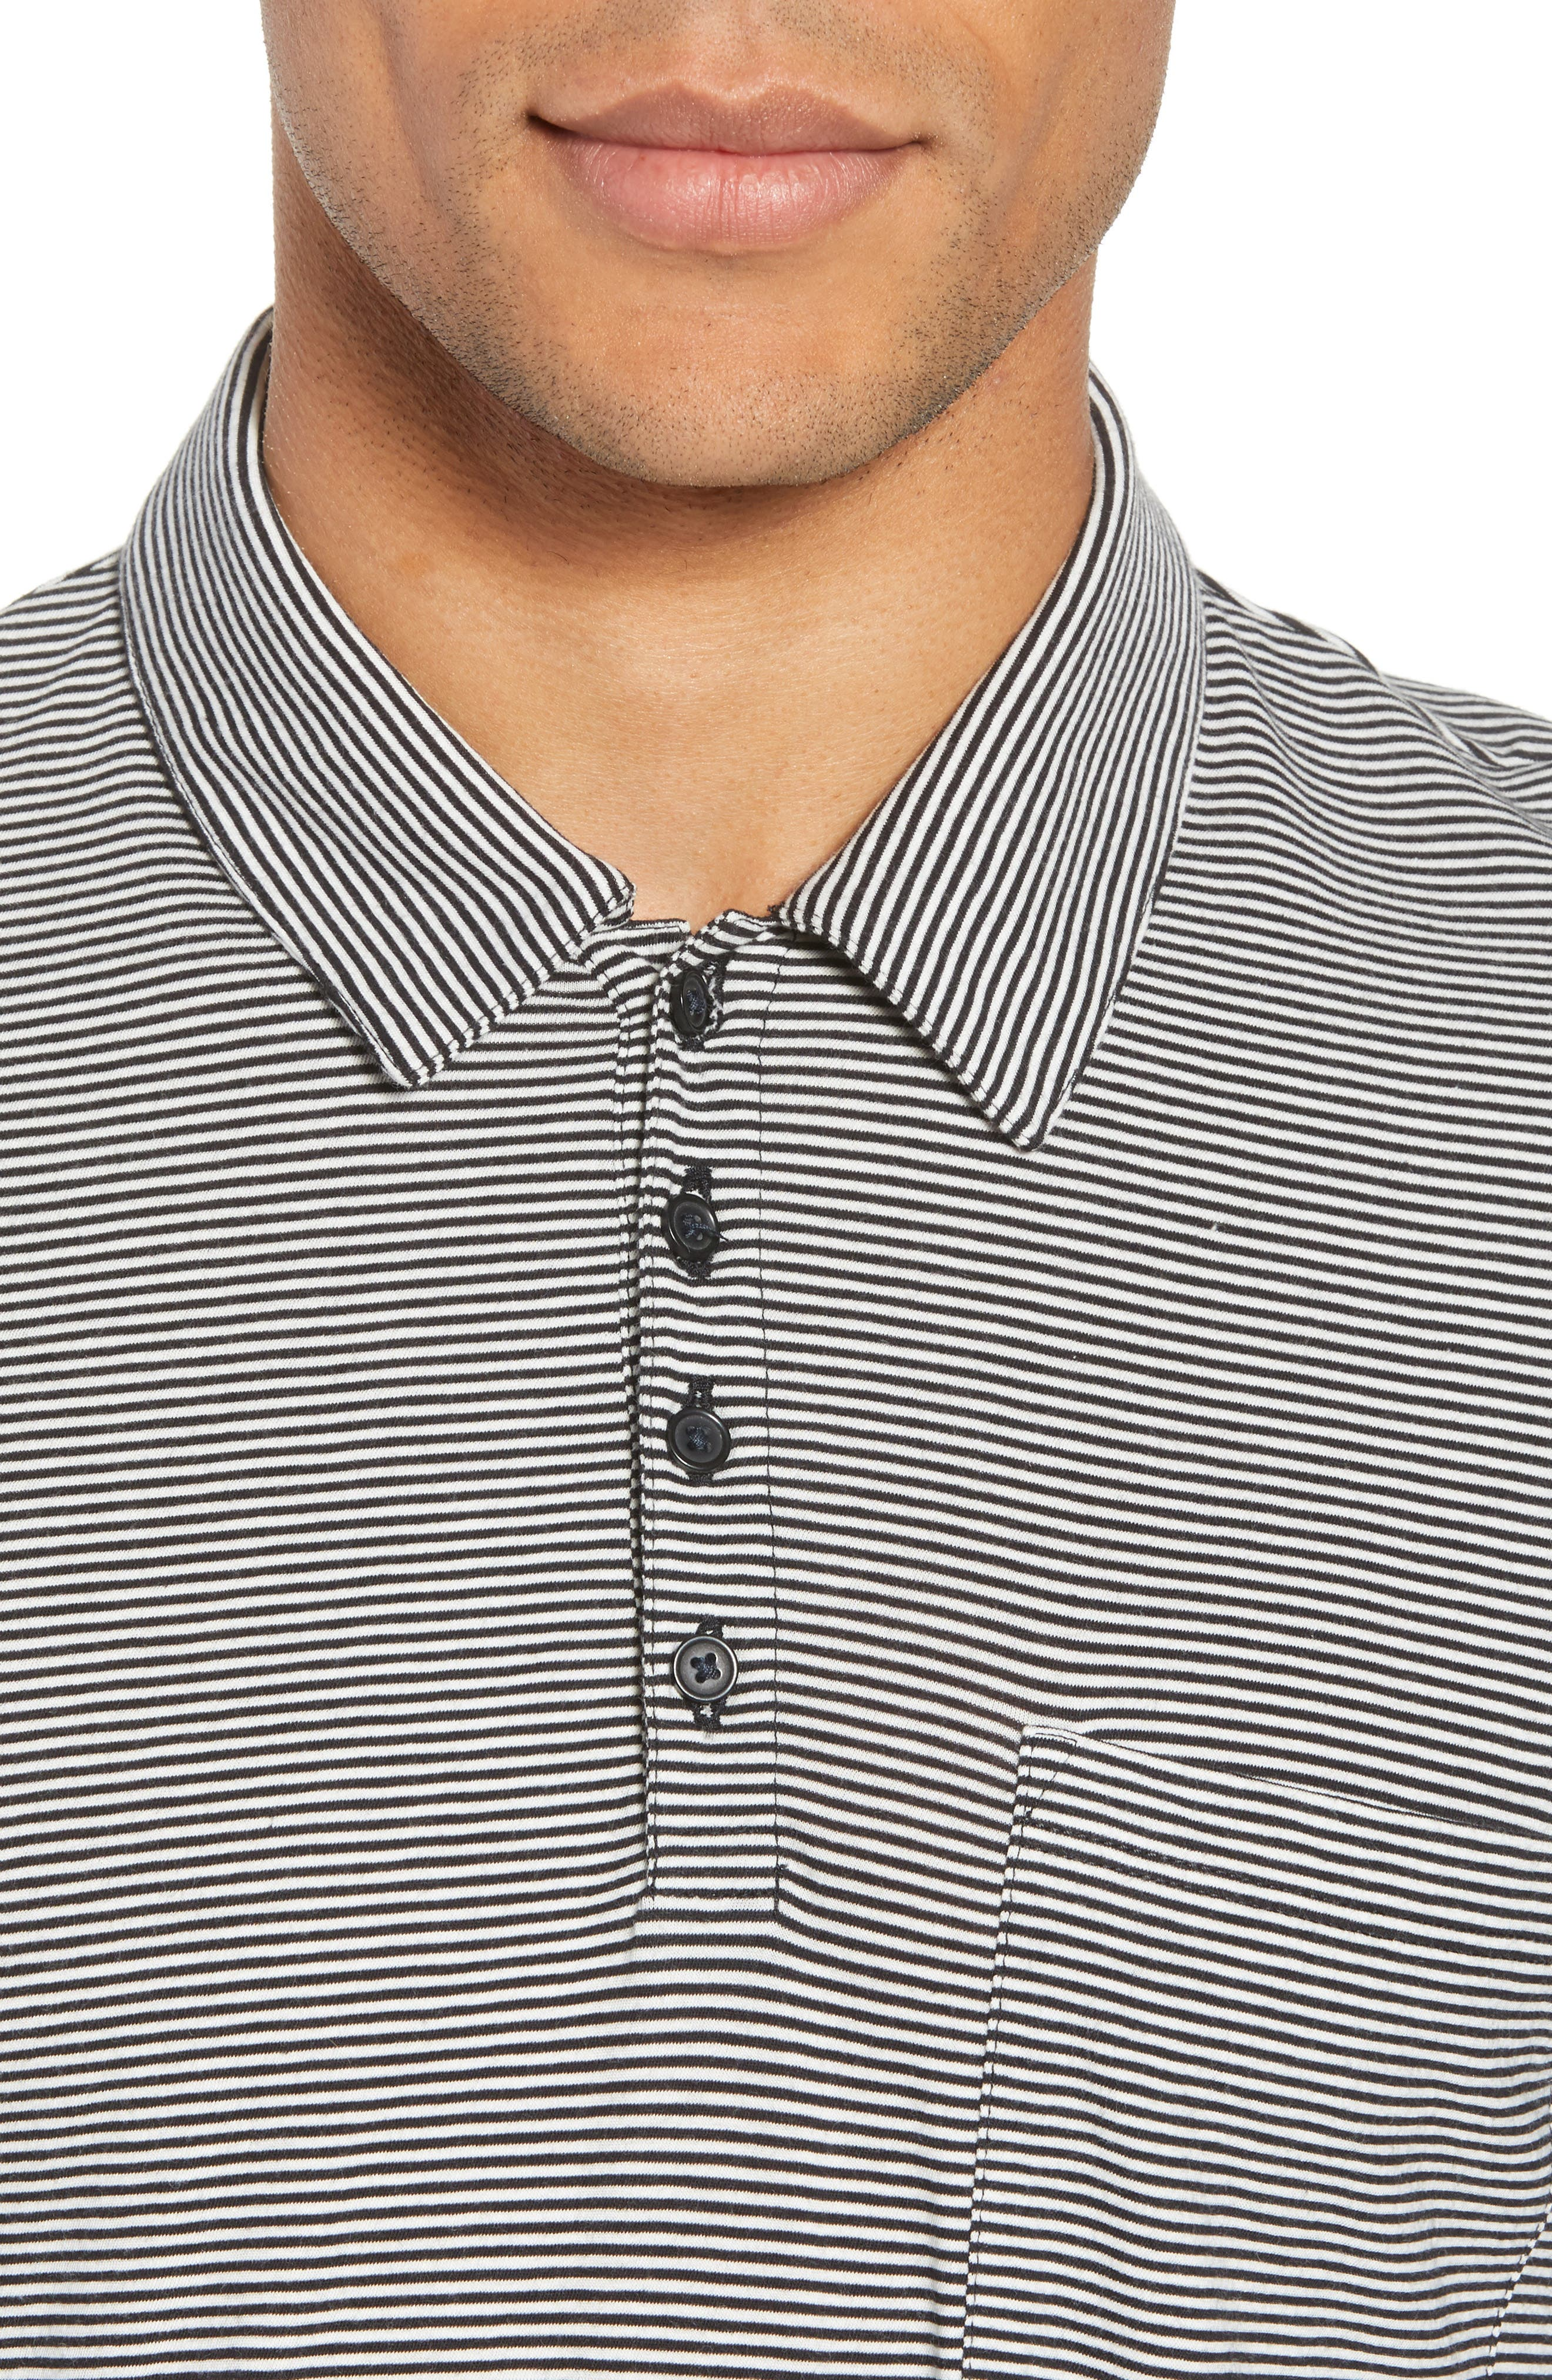 Slim Fit Stripe Polo Shirt,                             Alternate thumbnail 4, color,                             Black/ Leche